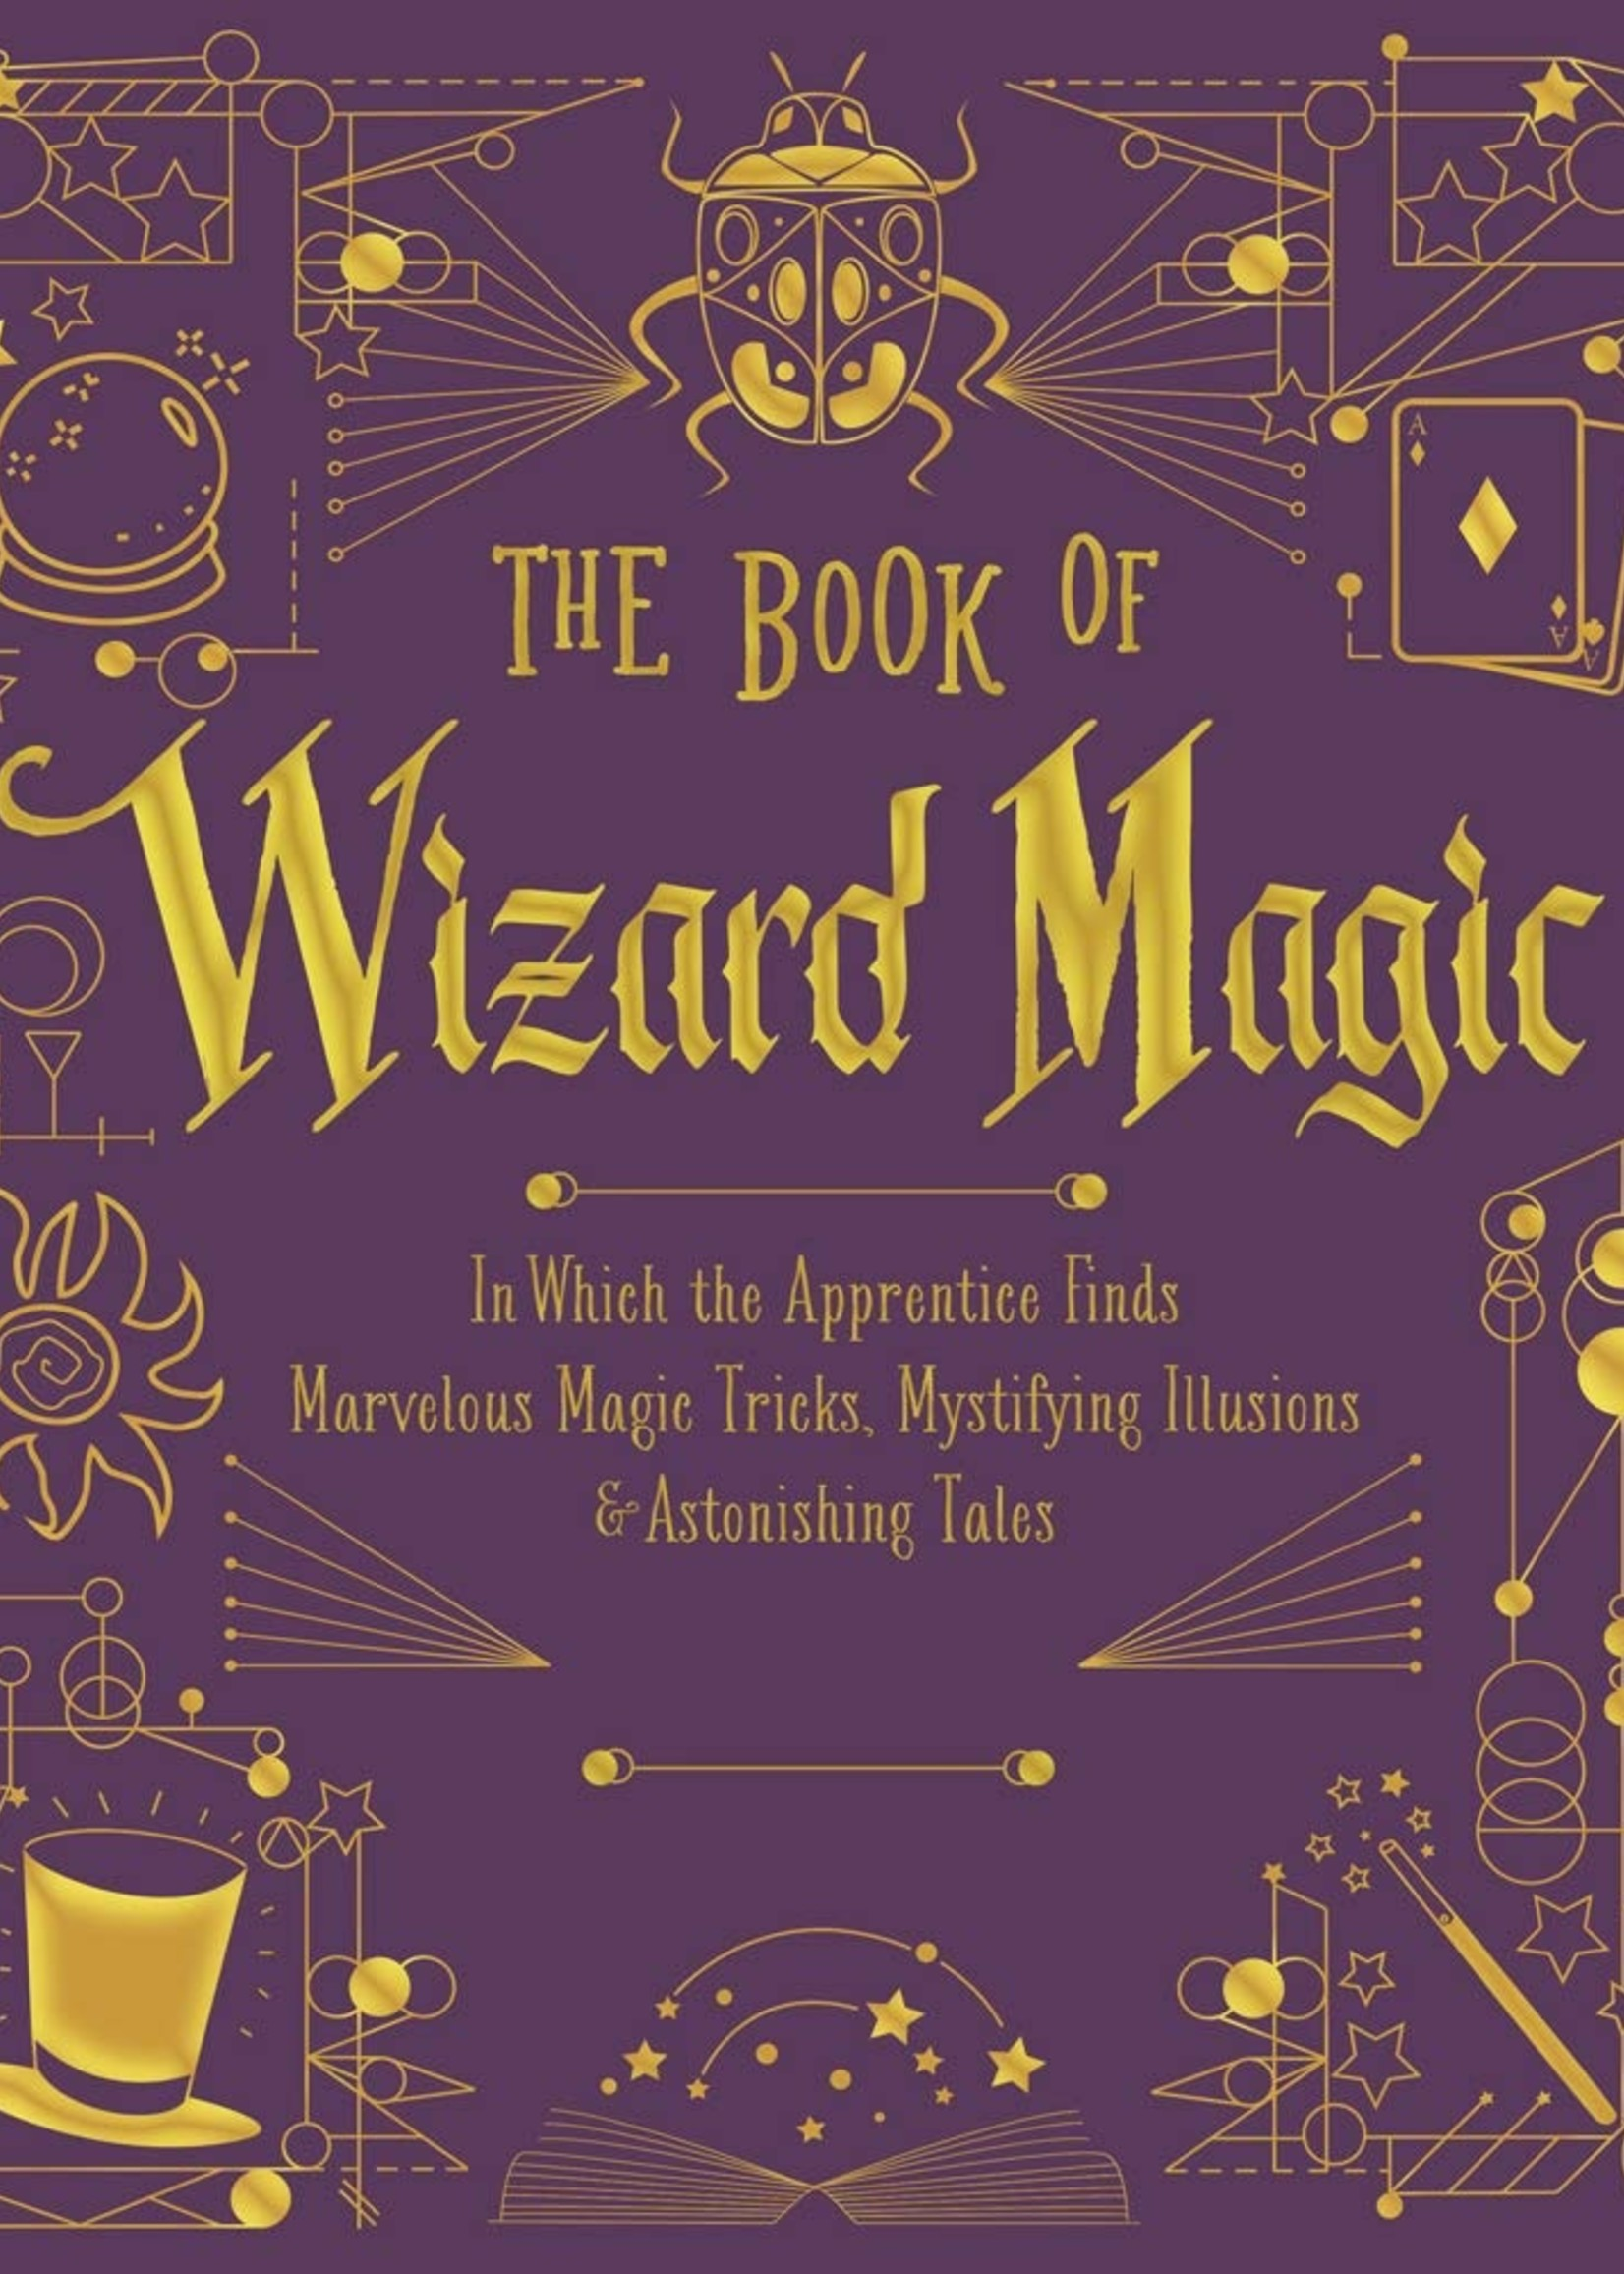 The Books of Wizard Craft #03, The Book of Wizard Magic - Hardcover